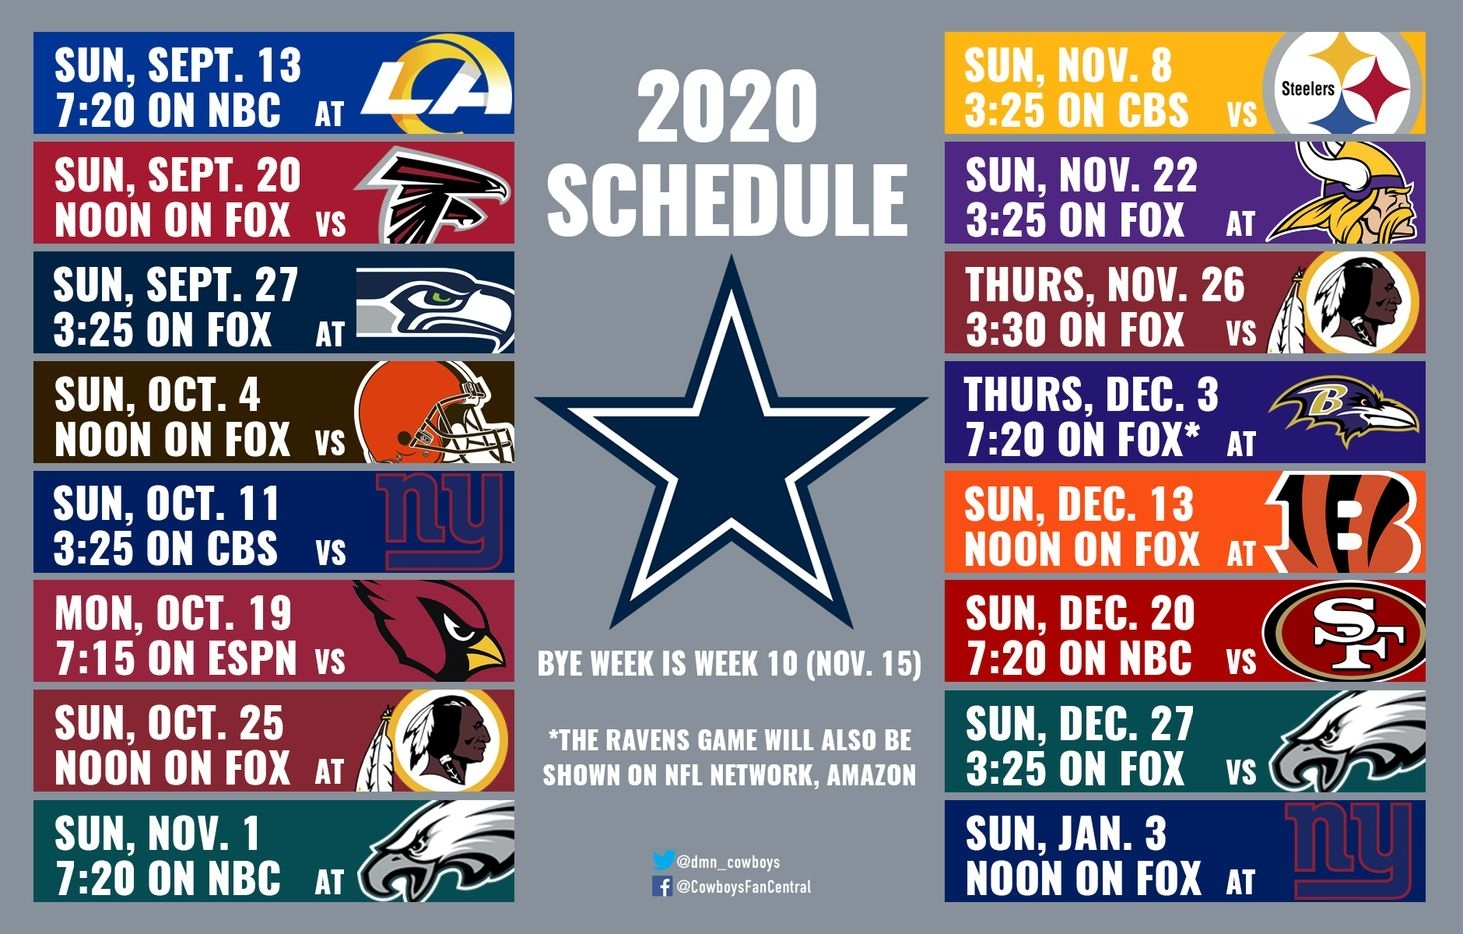 2020 Cowboys Schedule: Dates And Times Announced For Dallas throughout Nfl Schedule 2019 2020 Season Calendar